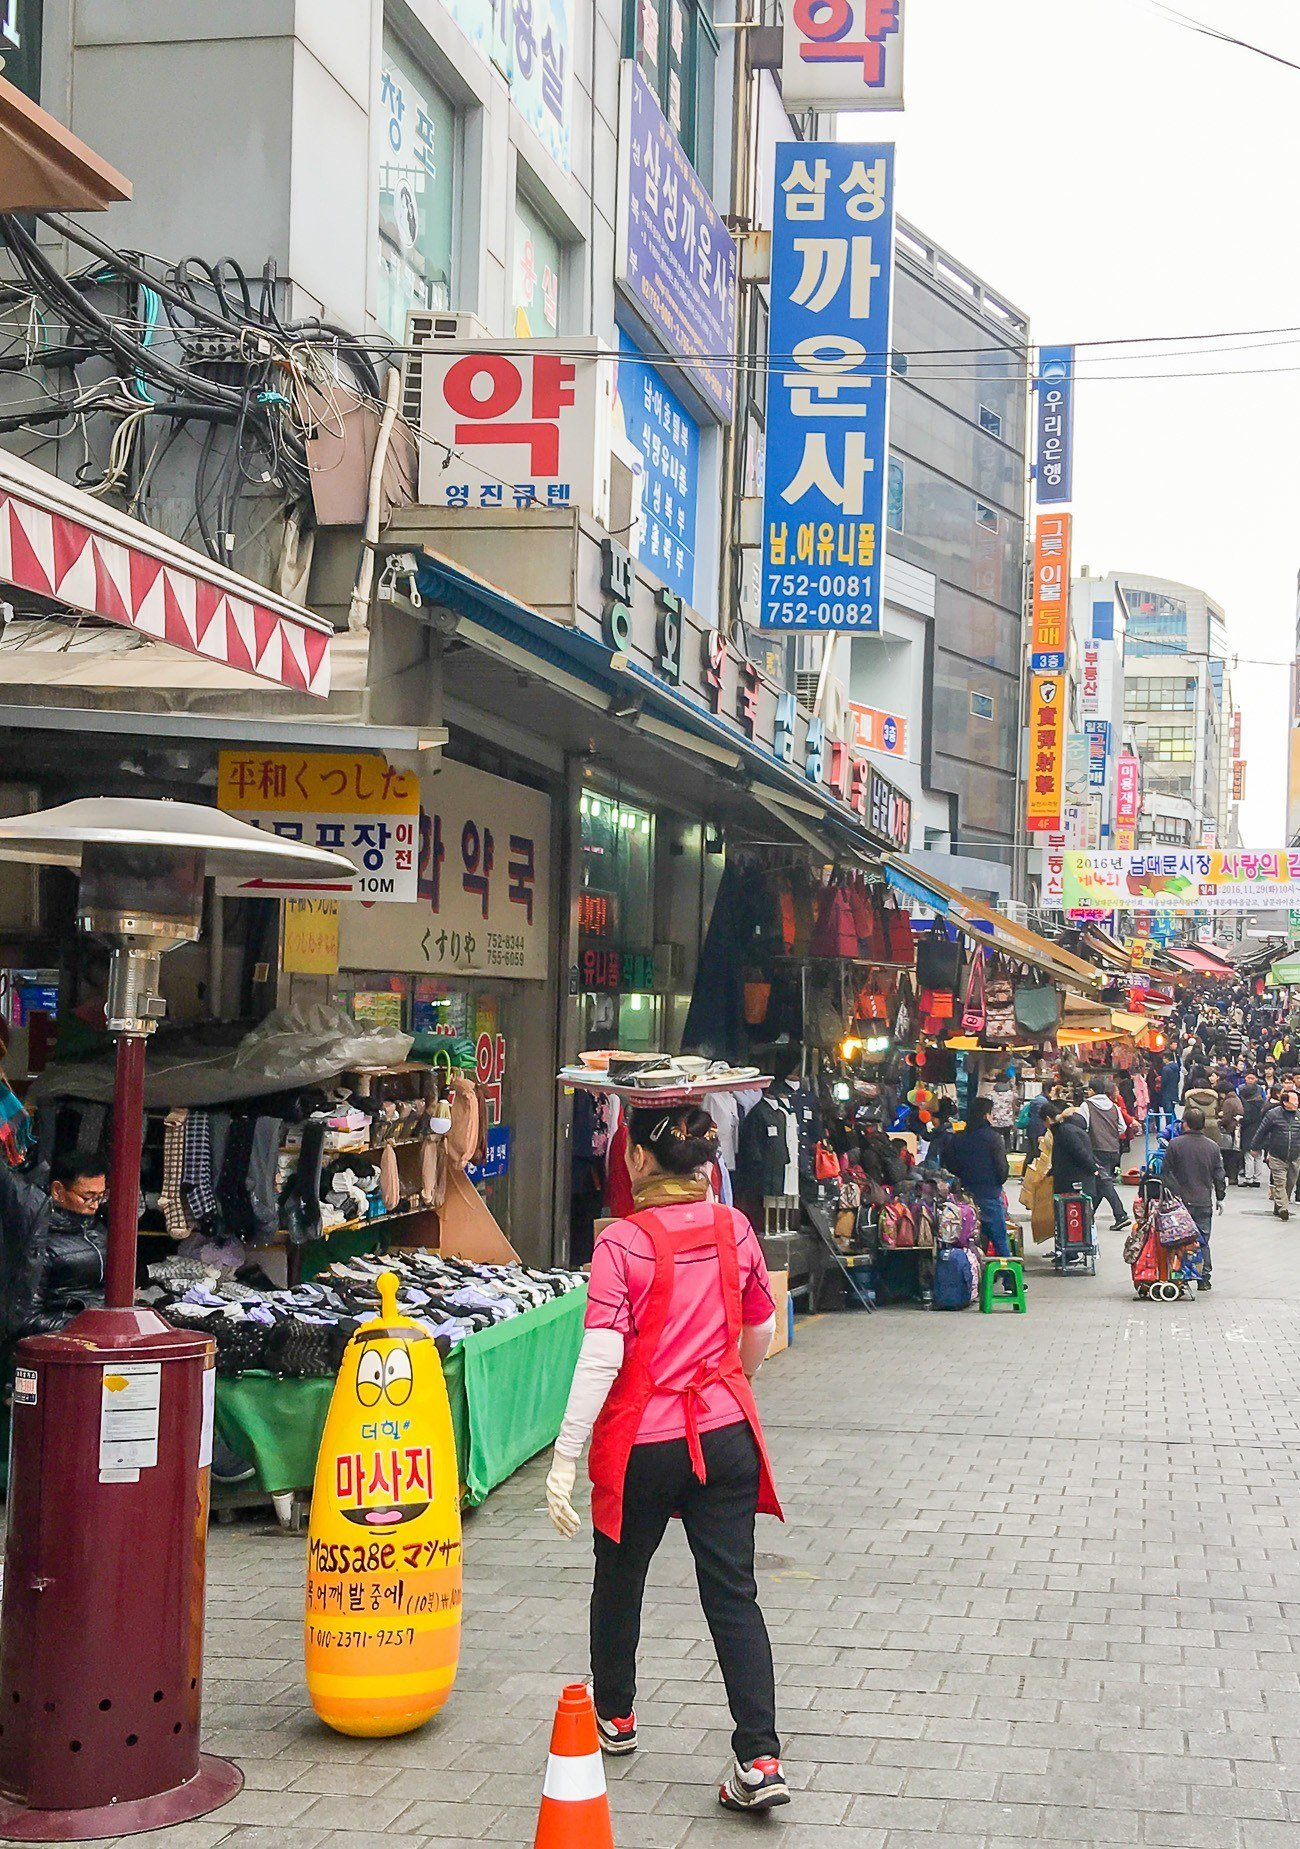 The streets of Namdaemun Market in Seoul were build before cars.